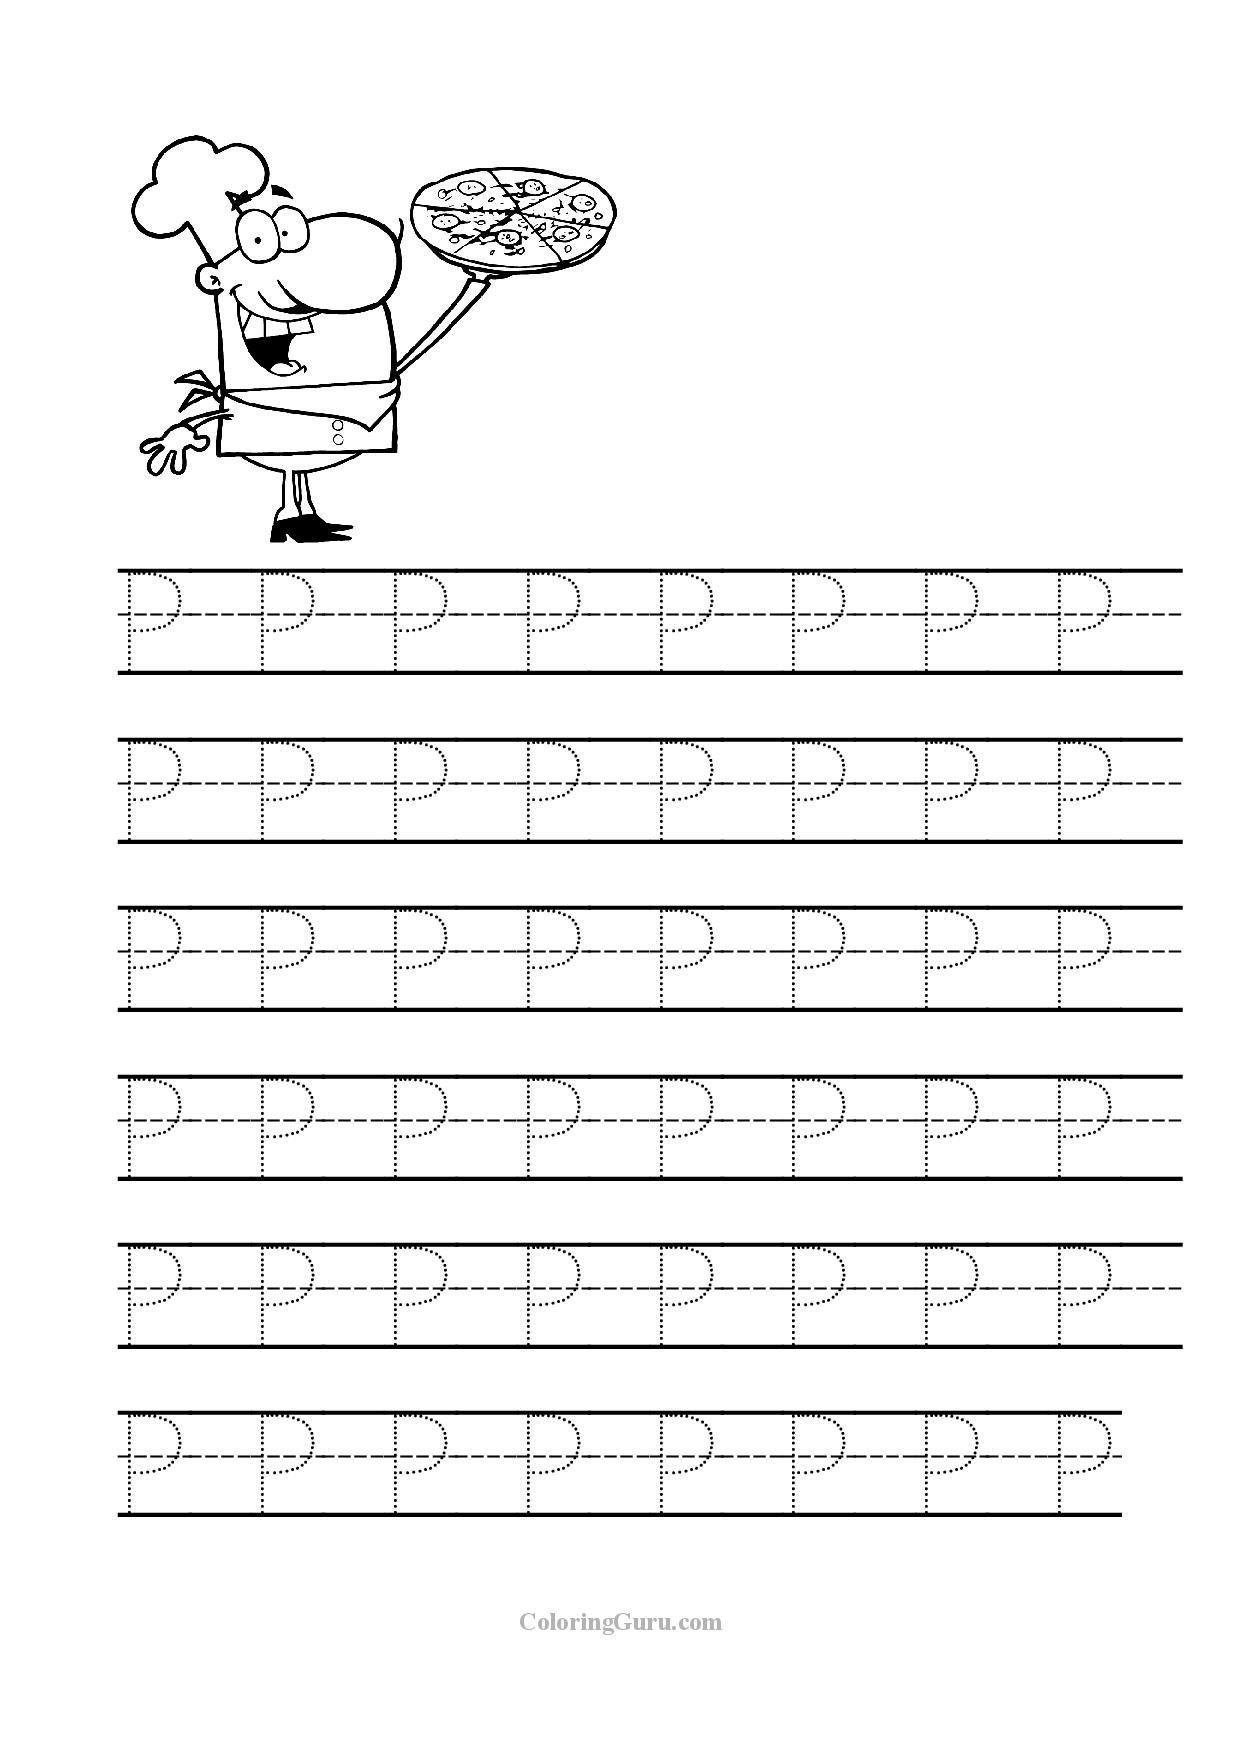 Letter P Tracing Worksheet Free Printable Tracing Letter P Worksheets for Preschool